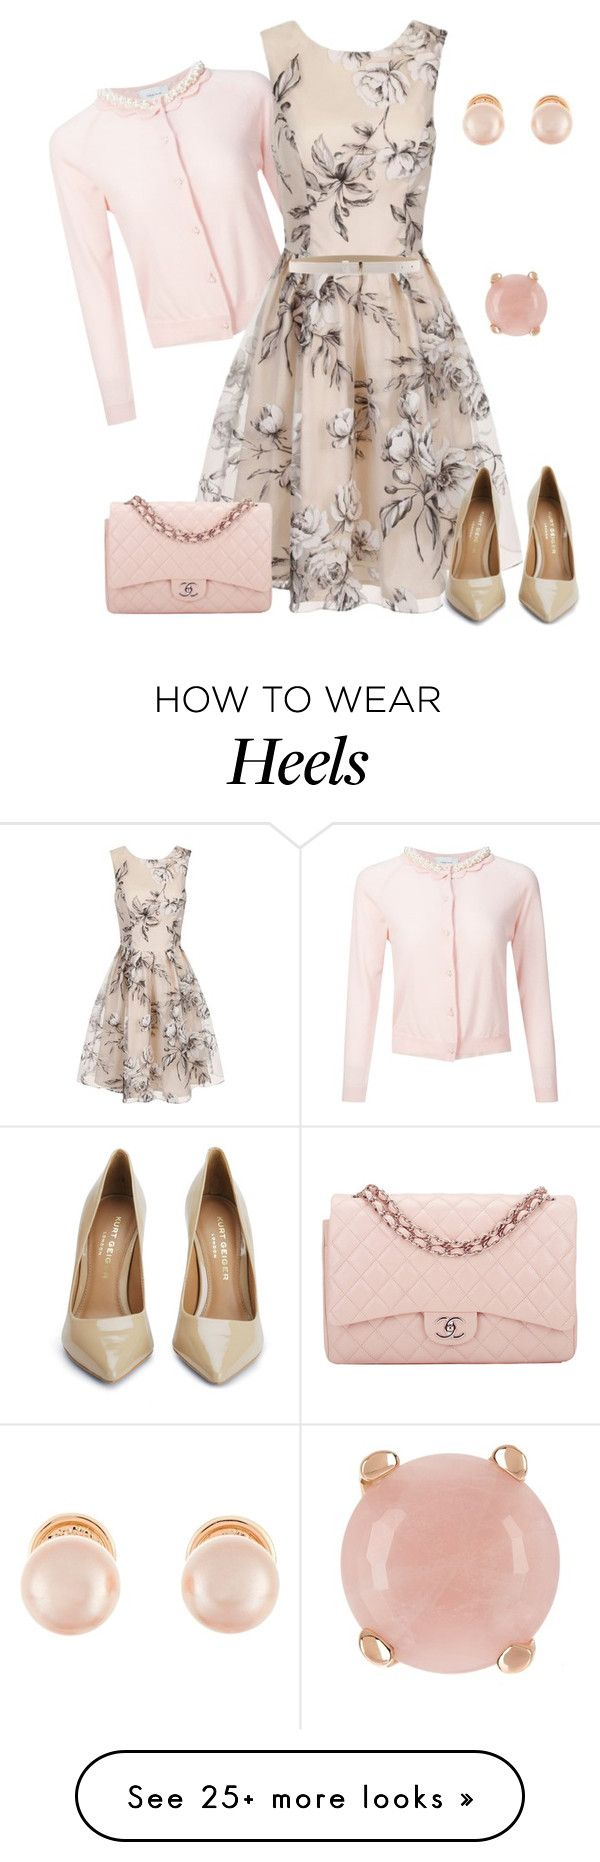 """""""outfit 2758"""" by natalyag on Polyvore featuring Simone Rocha, Chi Chi, Kurt Geiger, Chanel, Kenneth Jay Lane and Milor"""